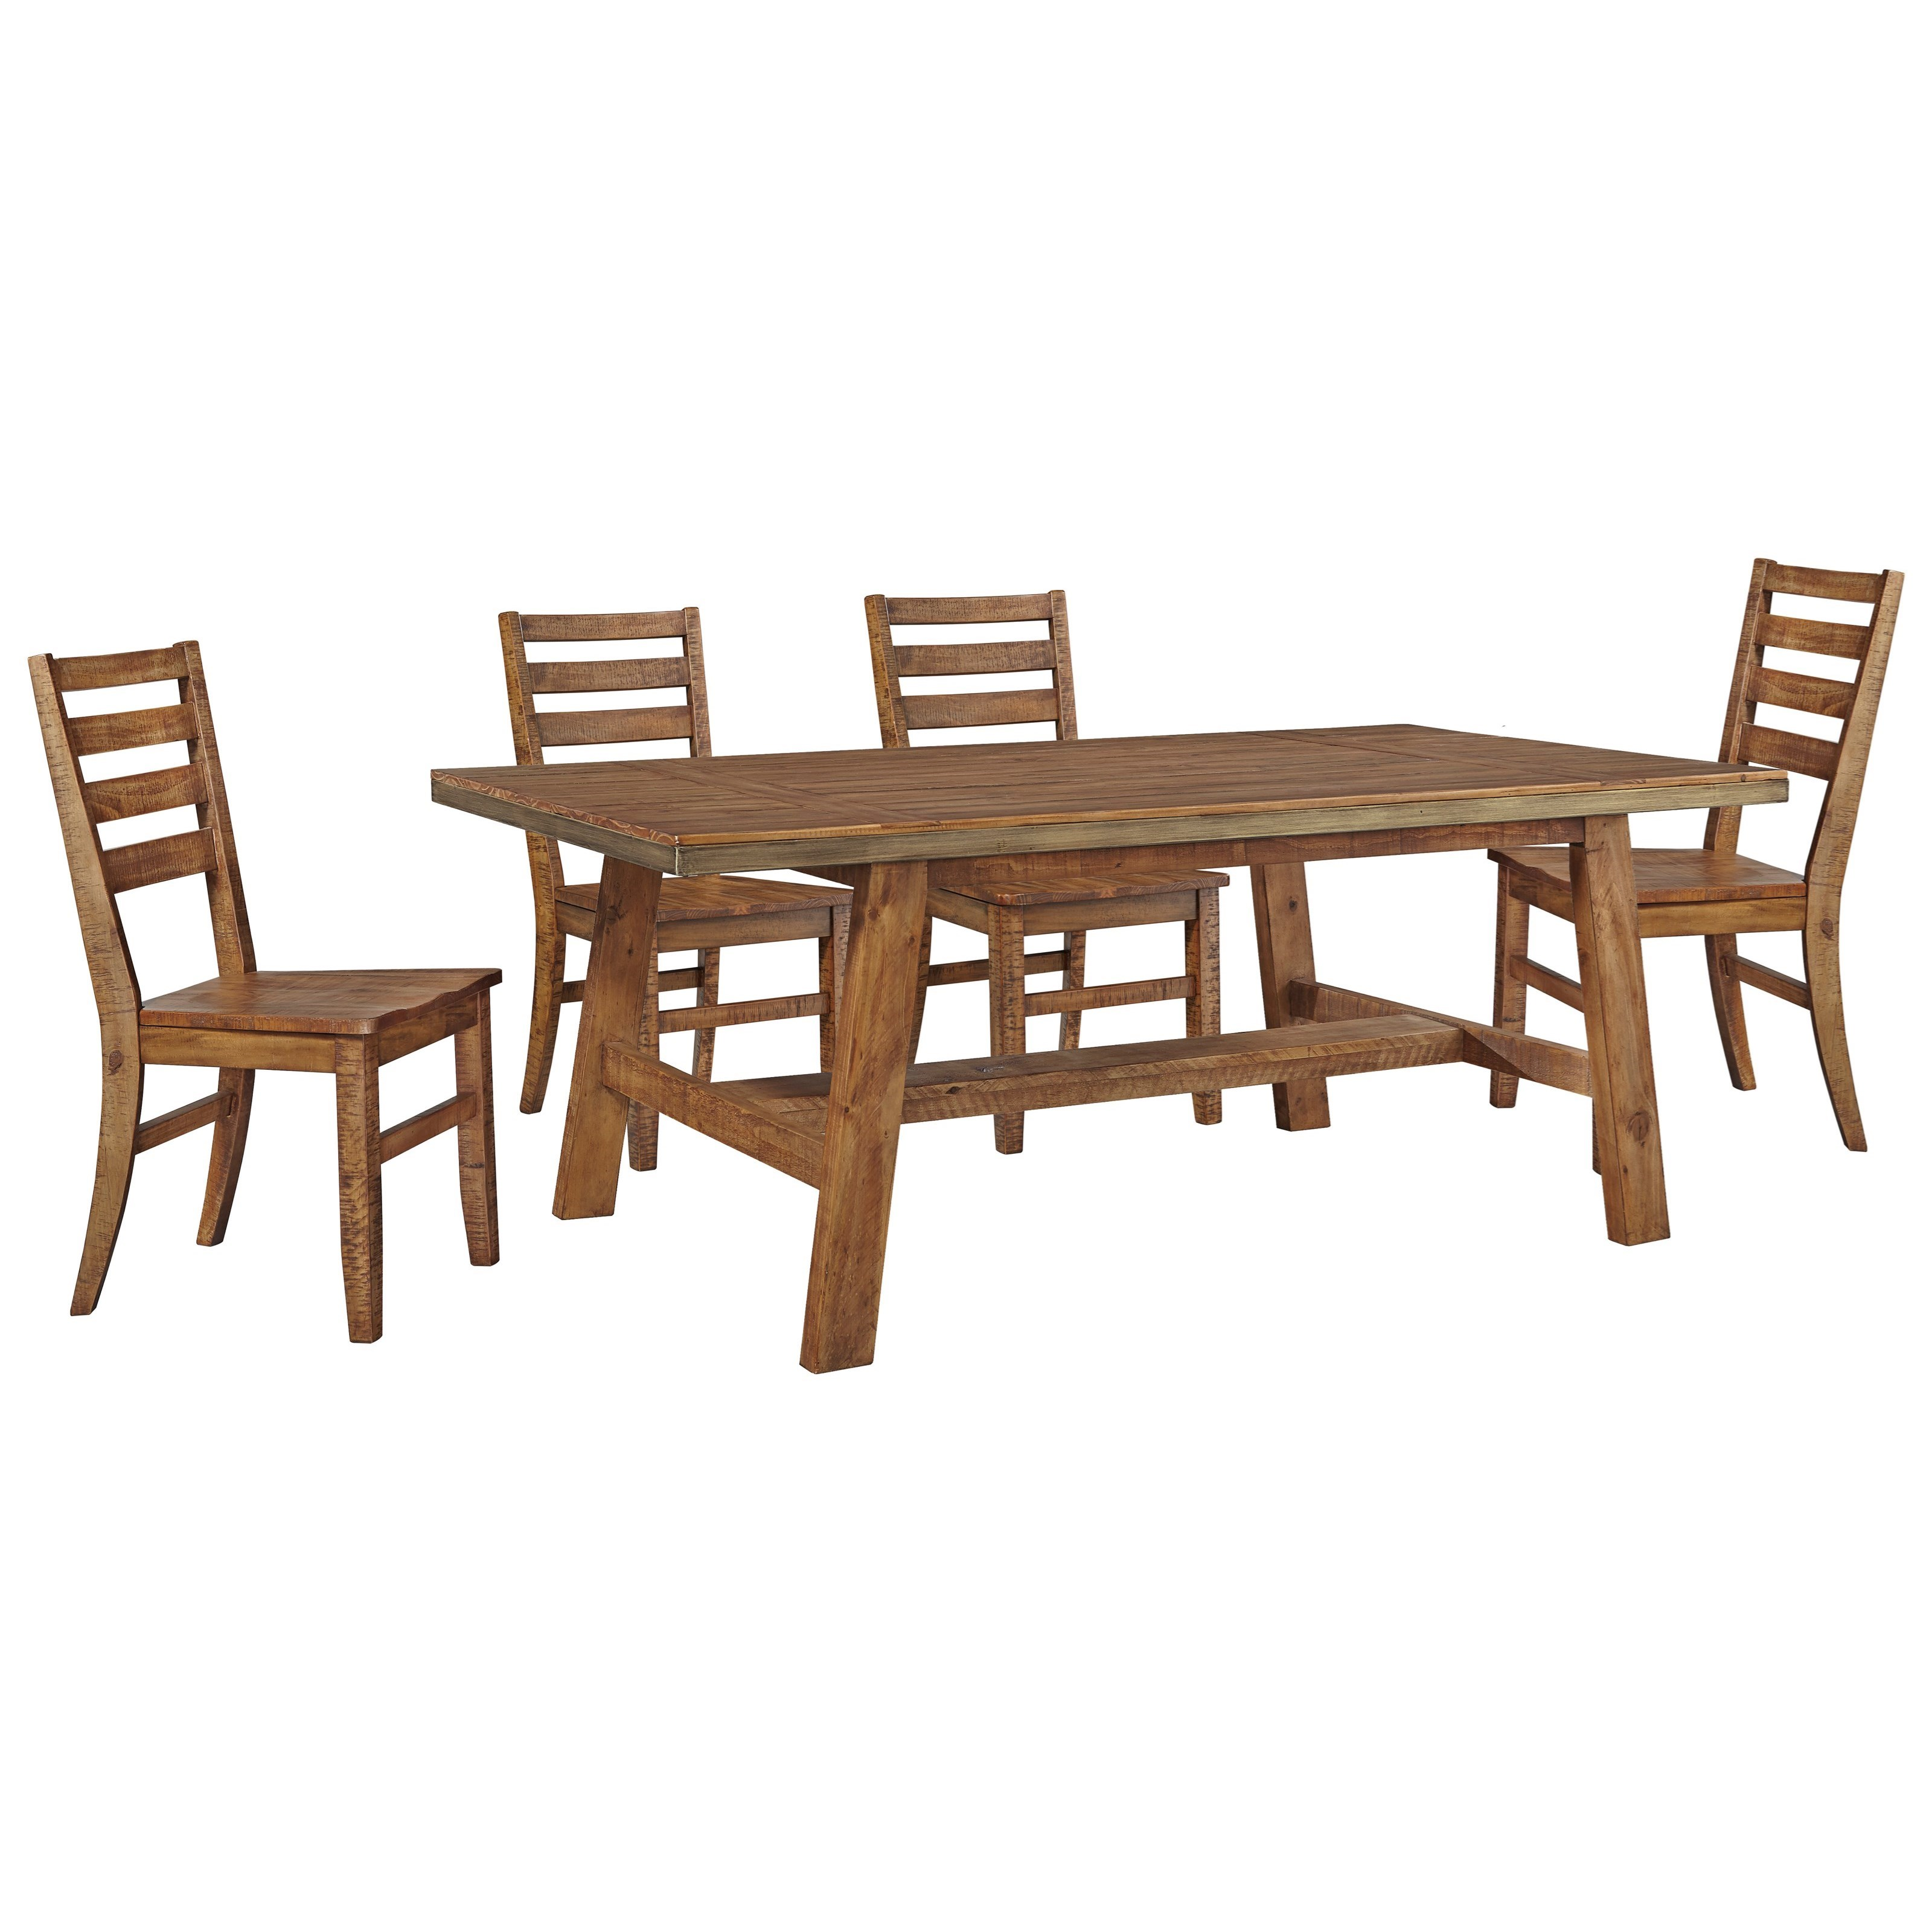 Signature Design by Ashley Dondie 5-Piece Solid Wood Dining Table Set - Item Number: D663-25+4x01